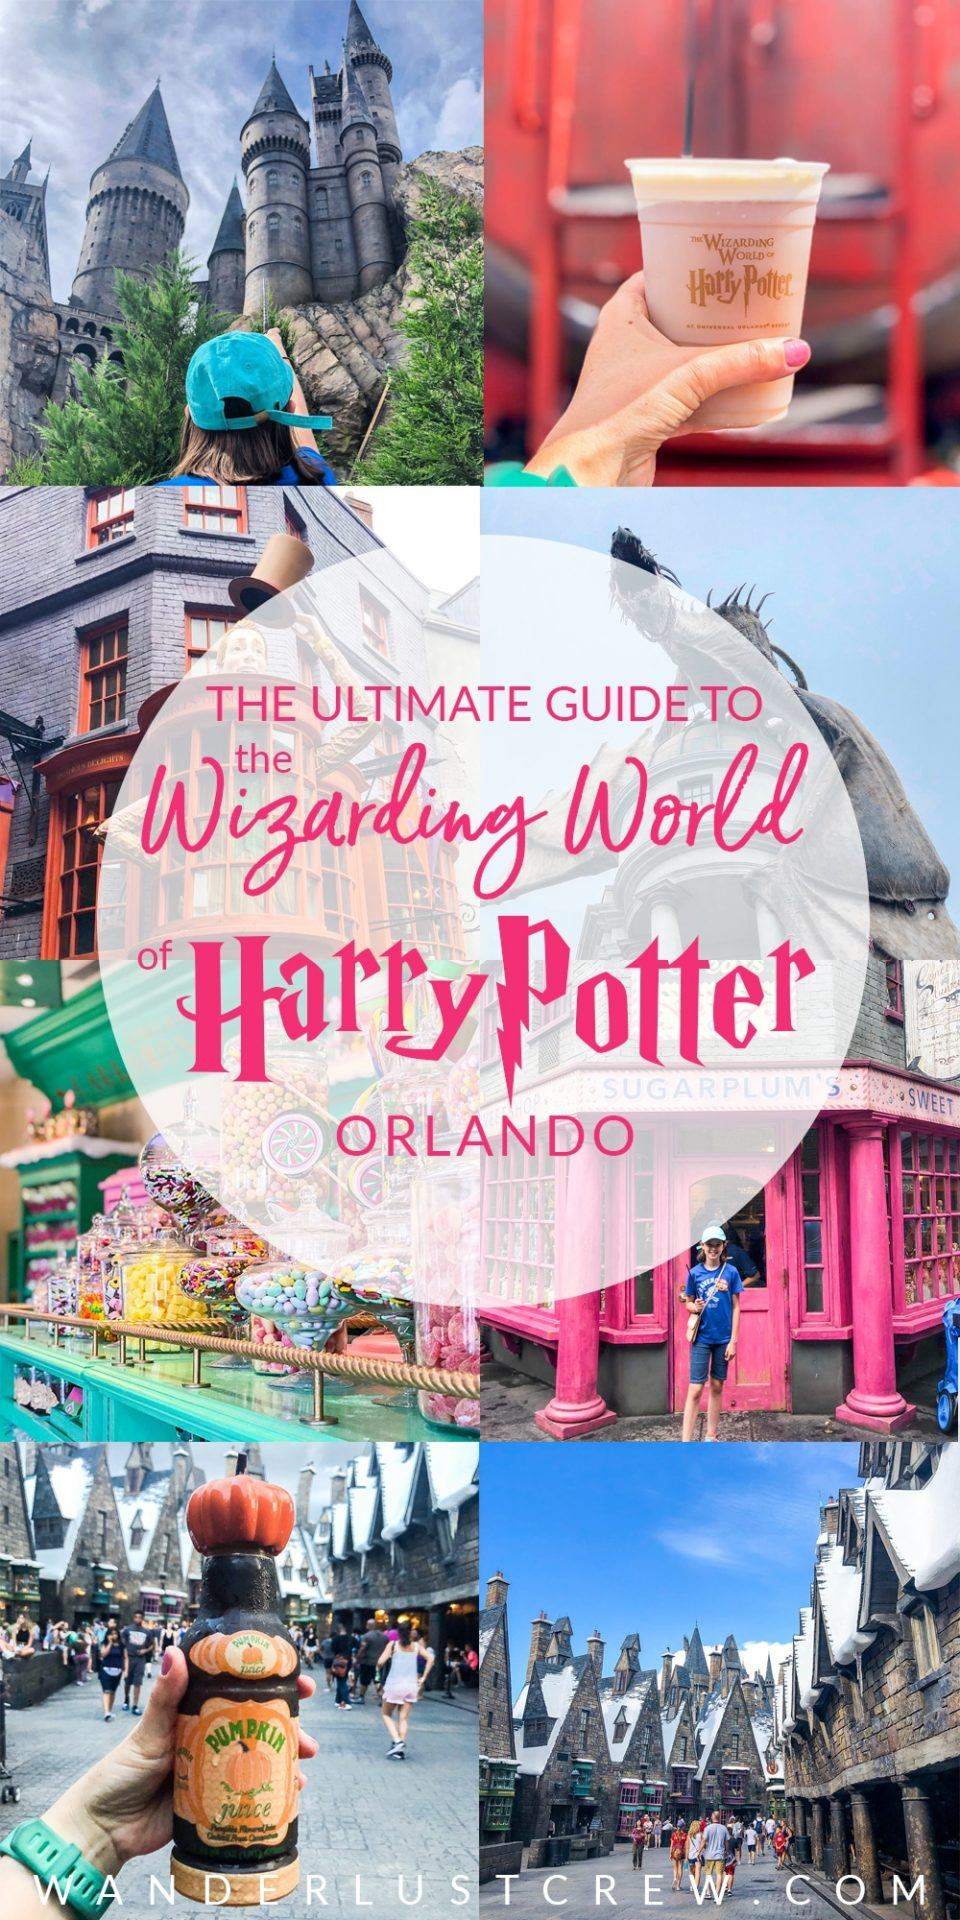 THE ULTIMATE GUIDE TO THE WIZARDING WORLD OF HARRY POTTER ORLANDO! Learn all my best tips and tricks for making the most of your time in this magical world!